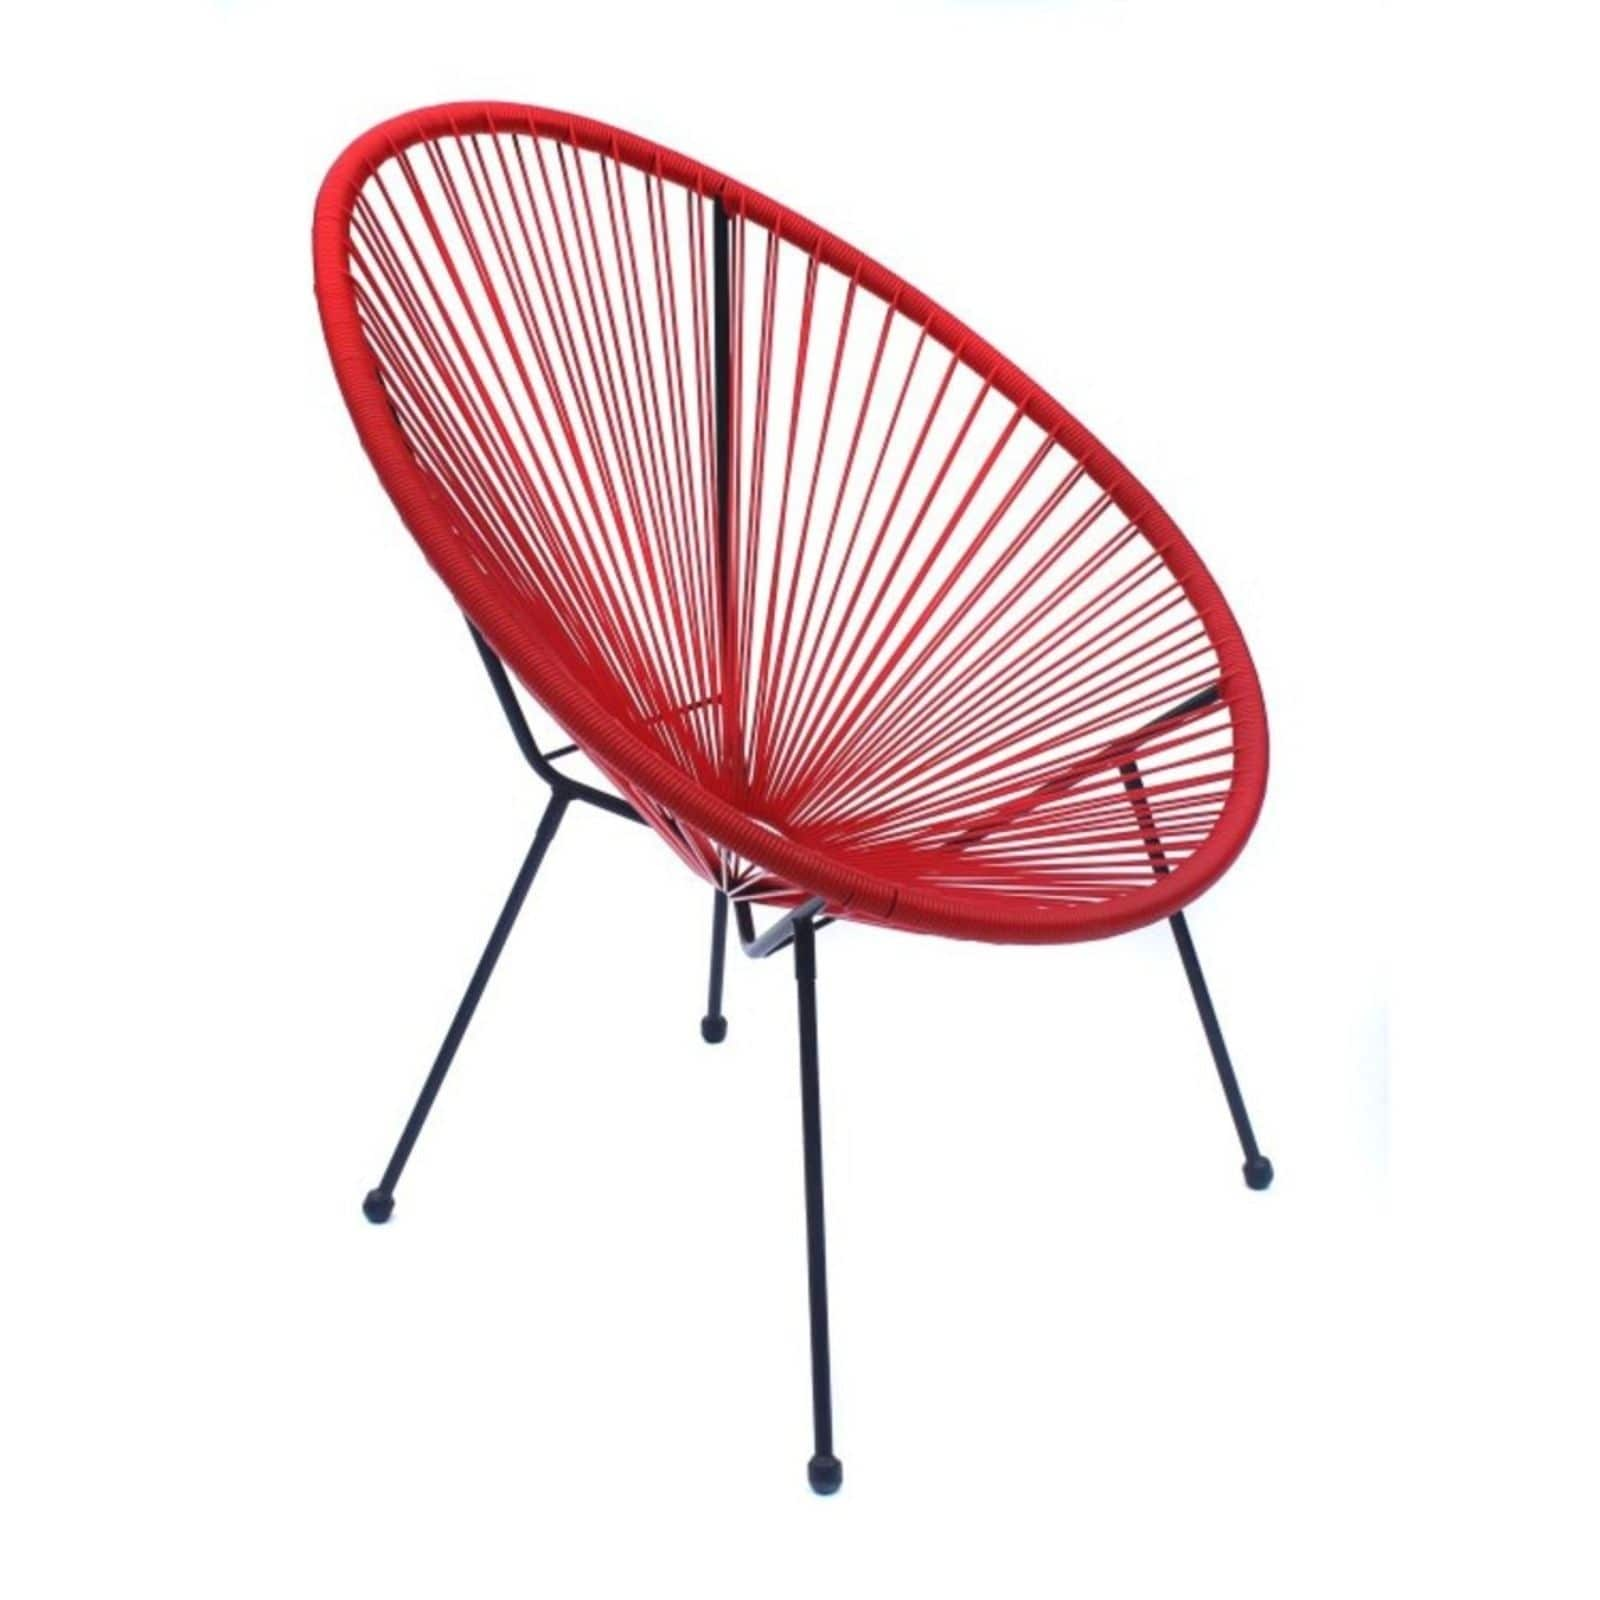 acapulco red resort grade wicker patio chairs 3 pack